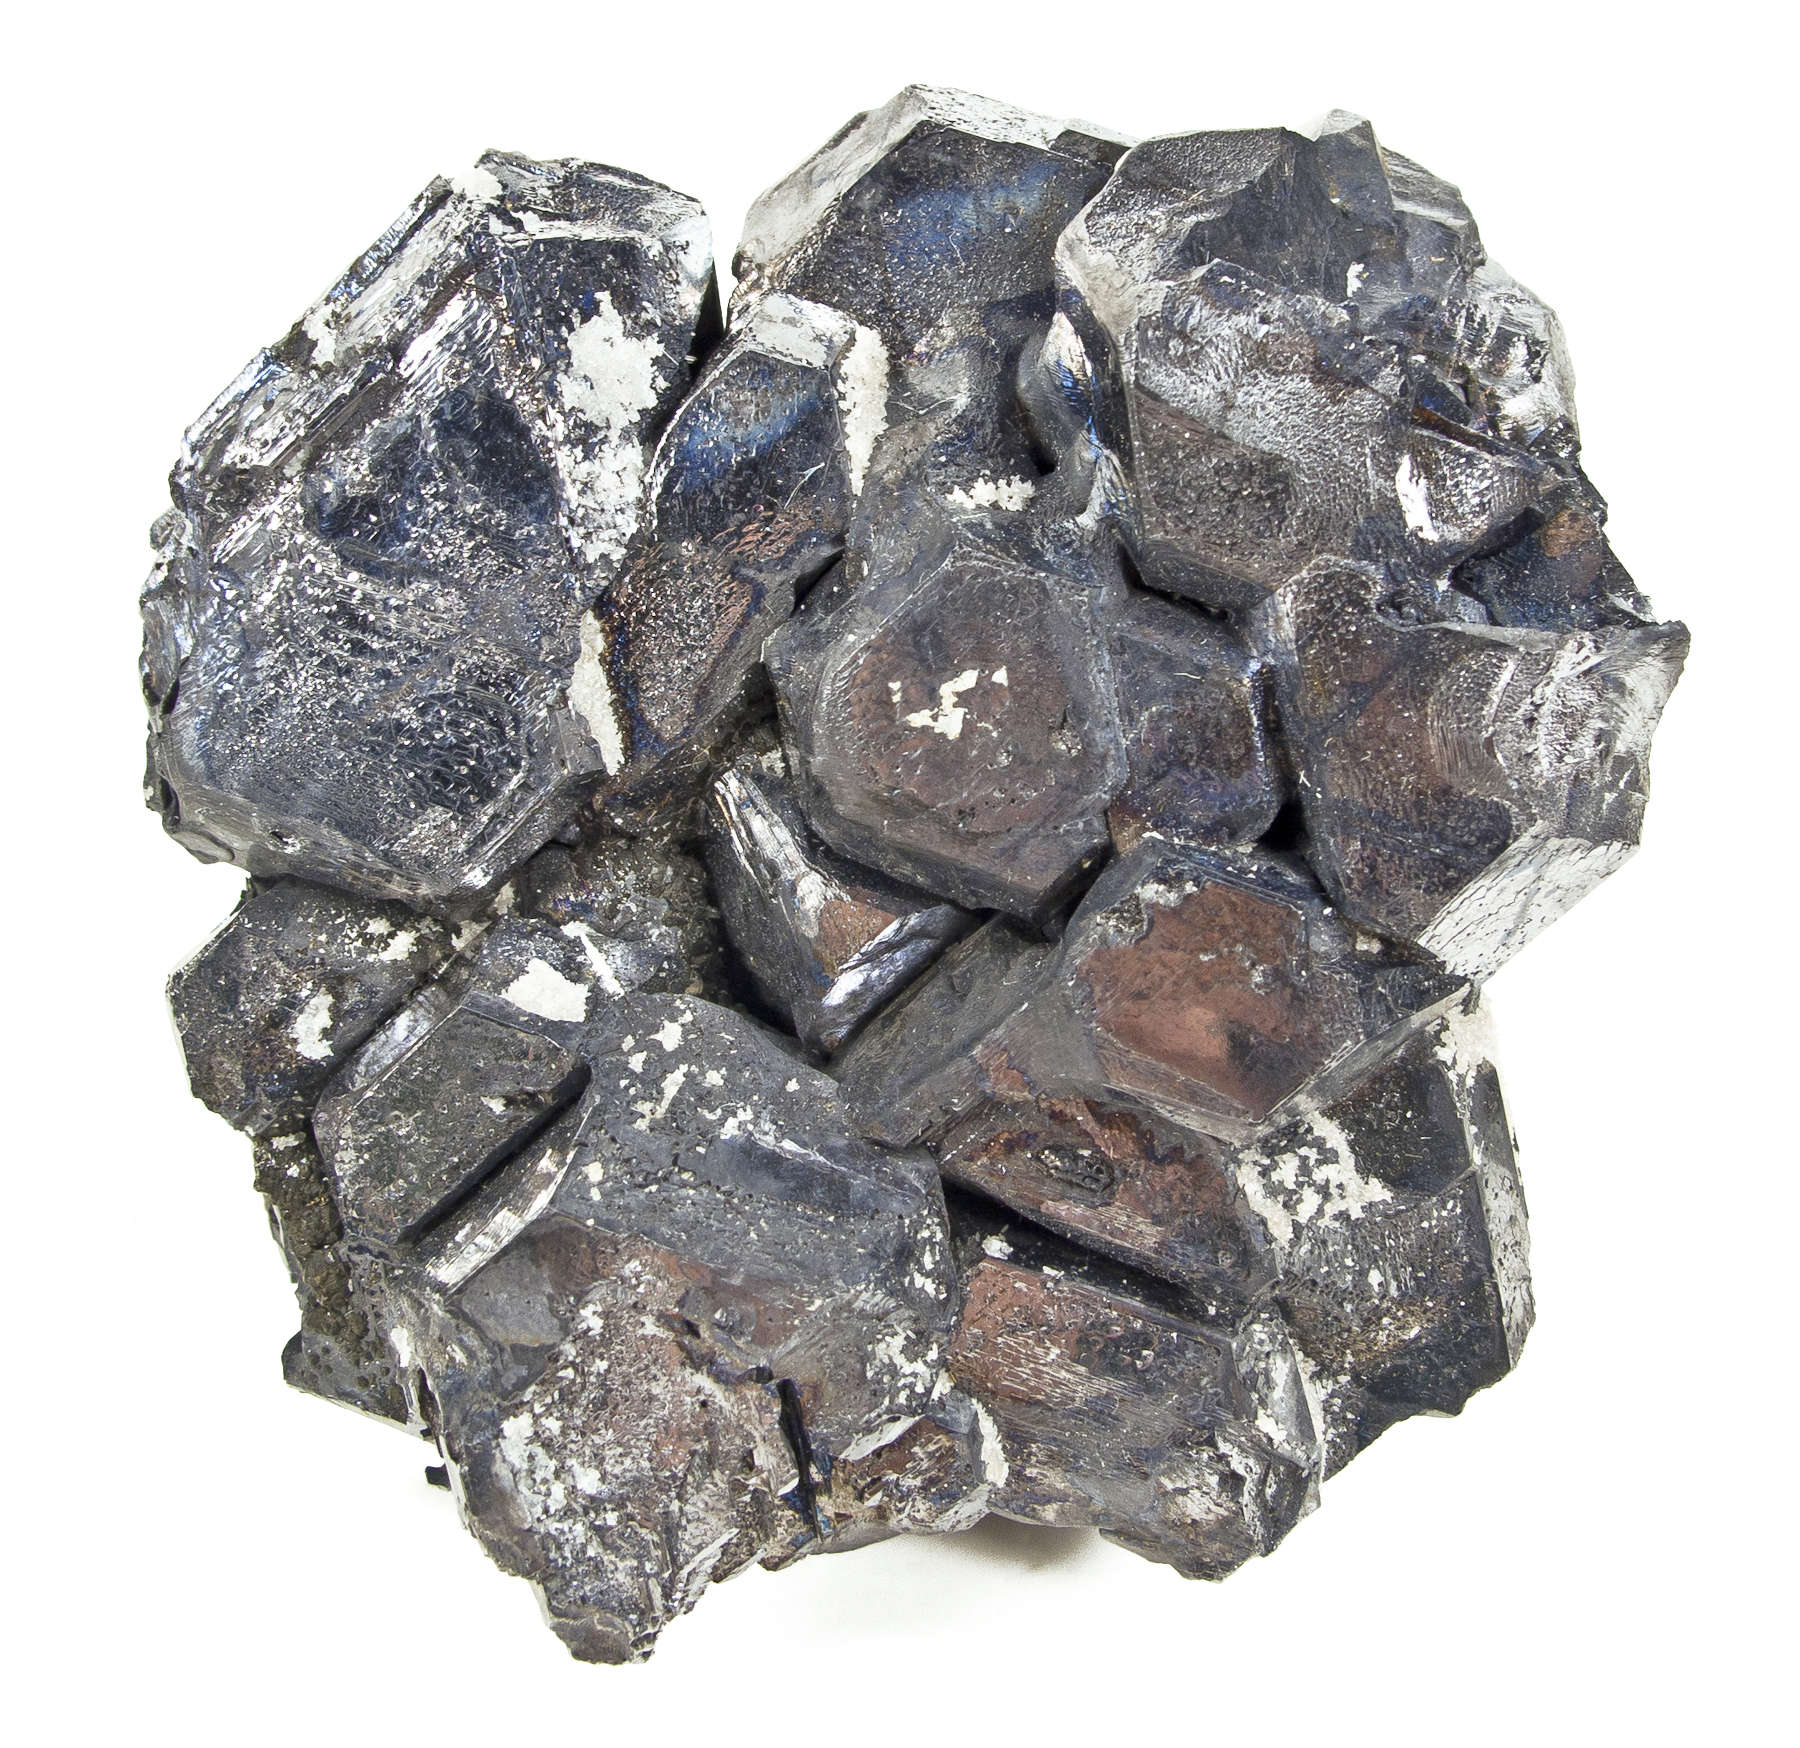 Robust spinel twinned metallic galena crystals 5 cm form city like